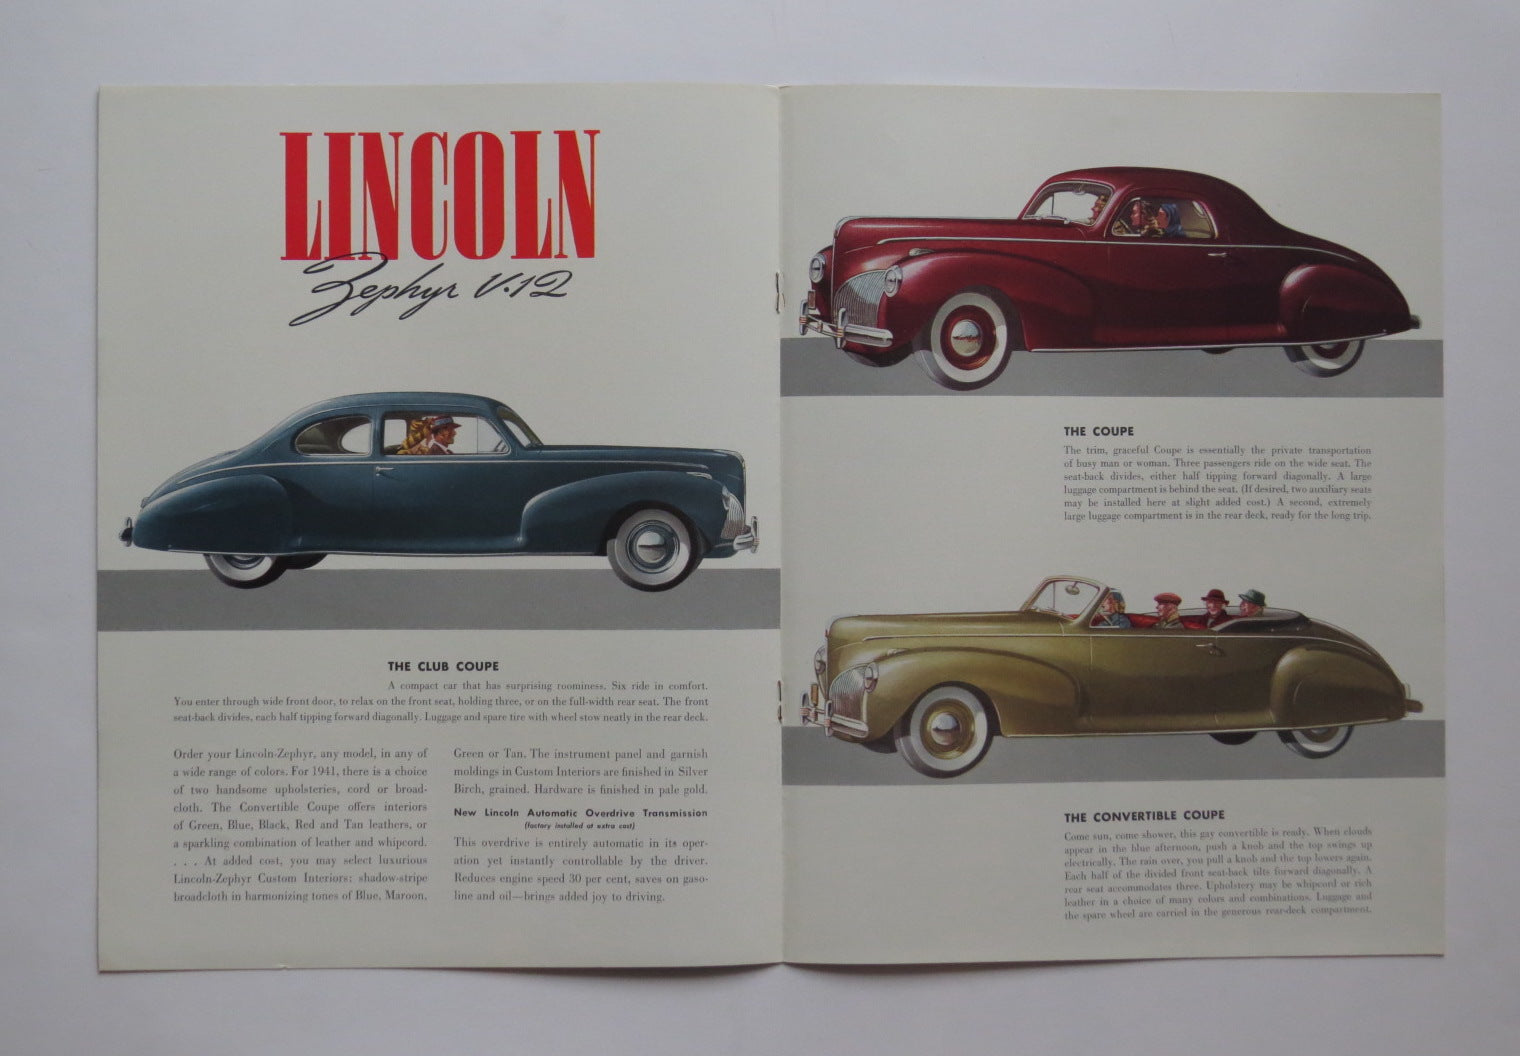 1941 Lincoln Zephyr V12 Brochure Sedan Club Coupe Convertible Ford